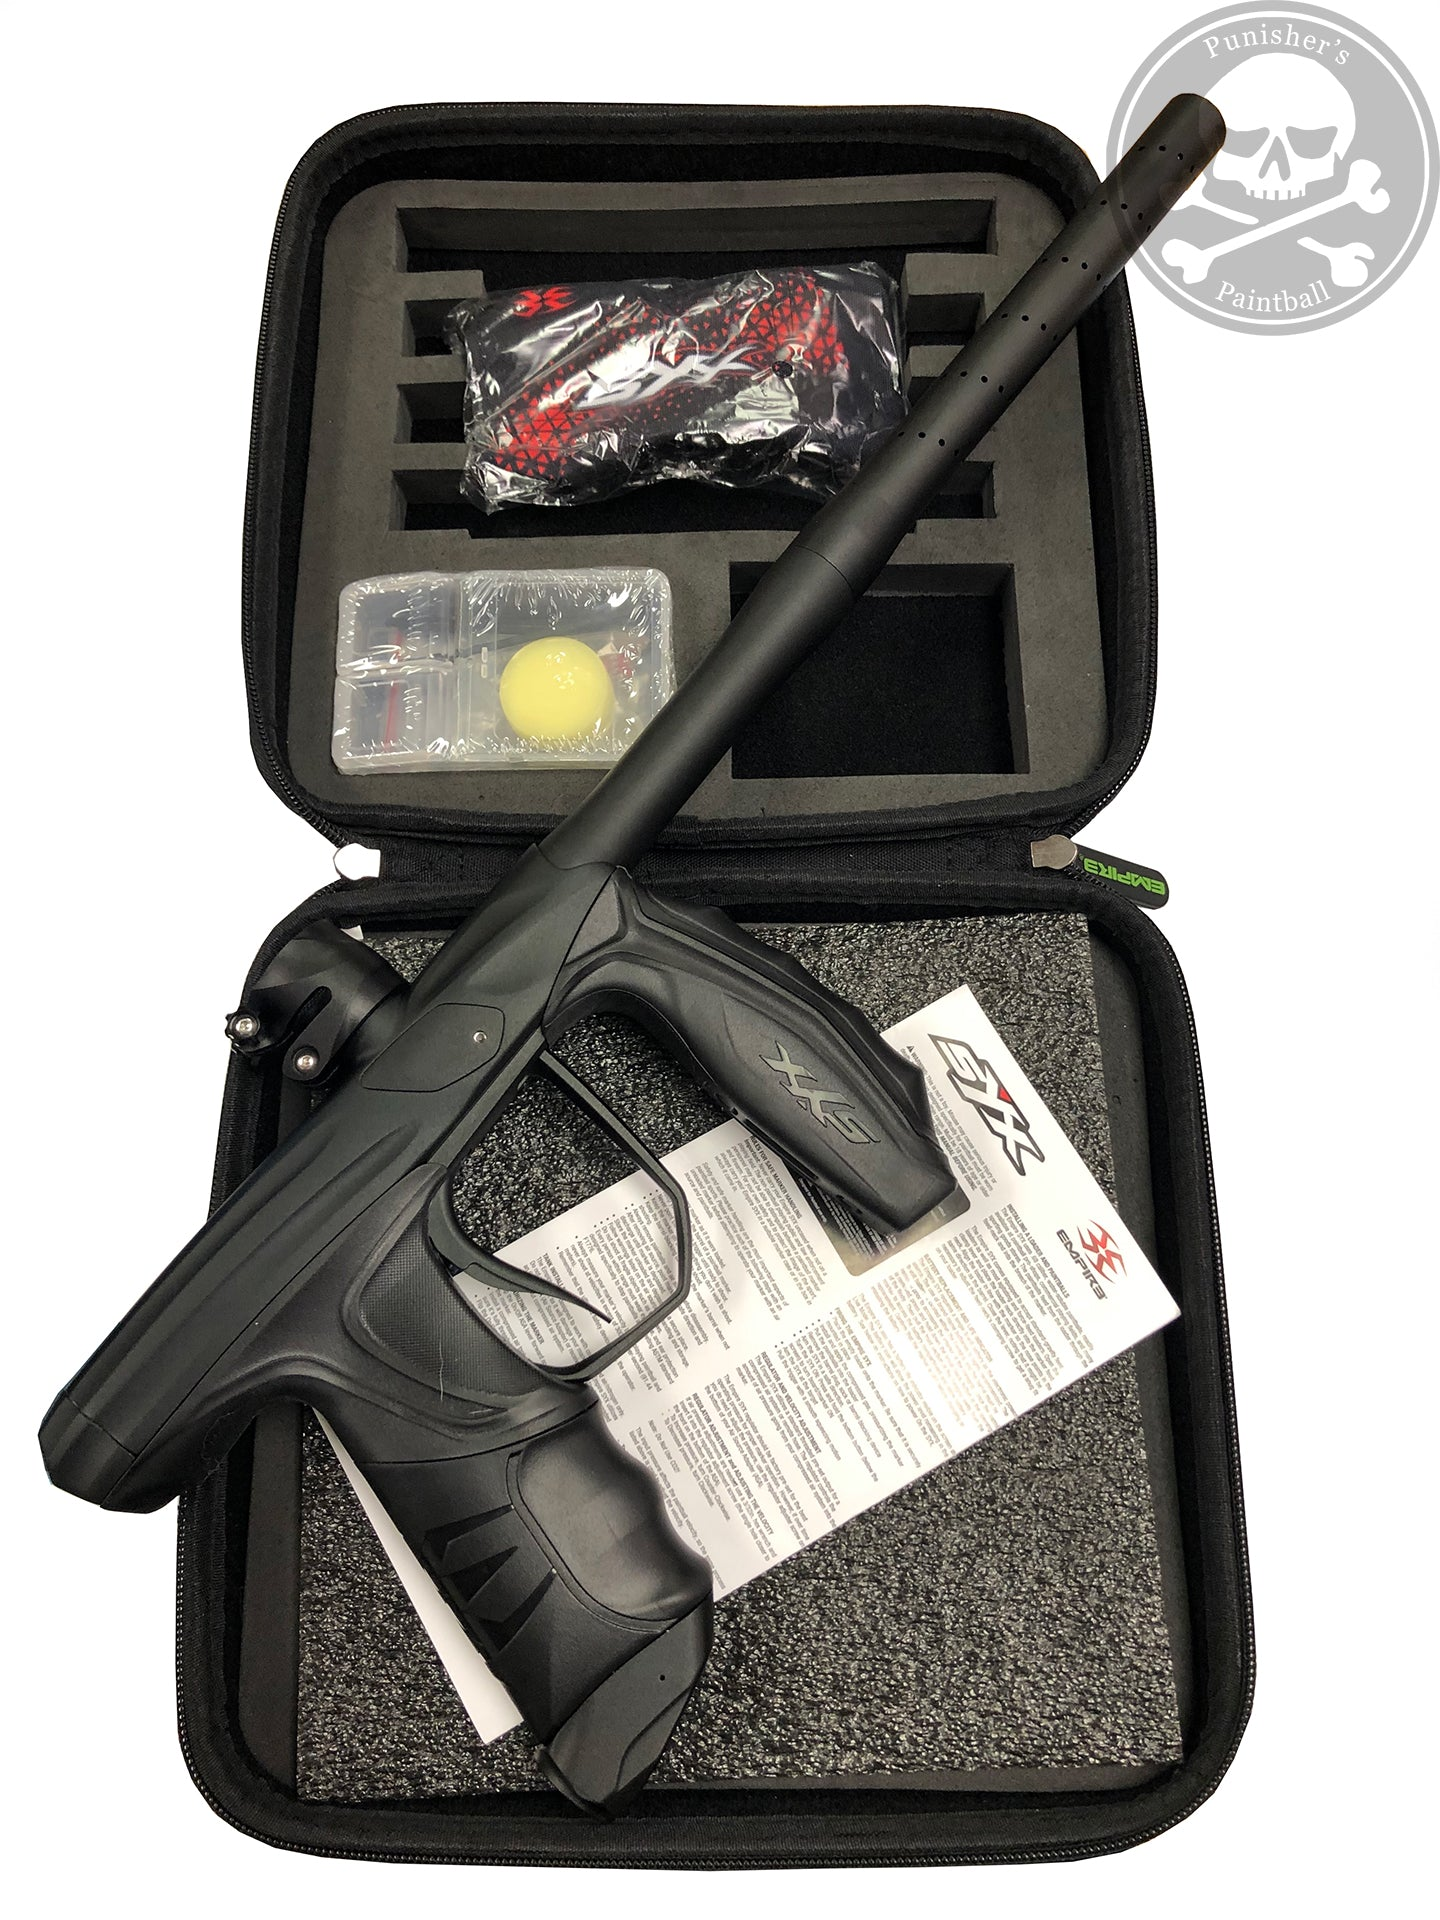 Used Empire Syx Paintball Gun - Black